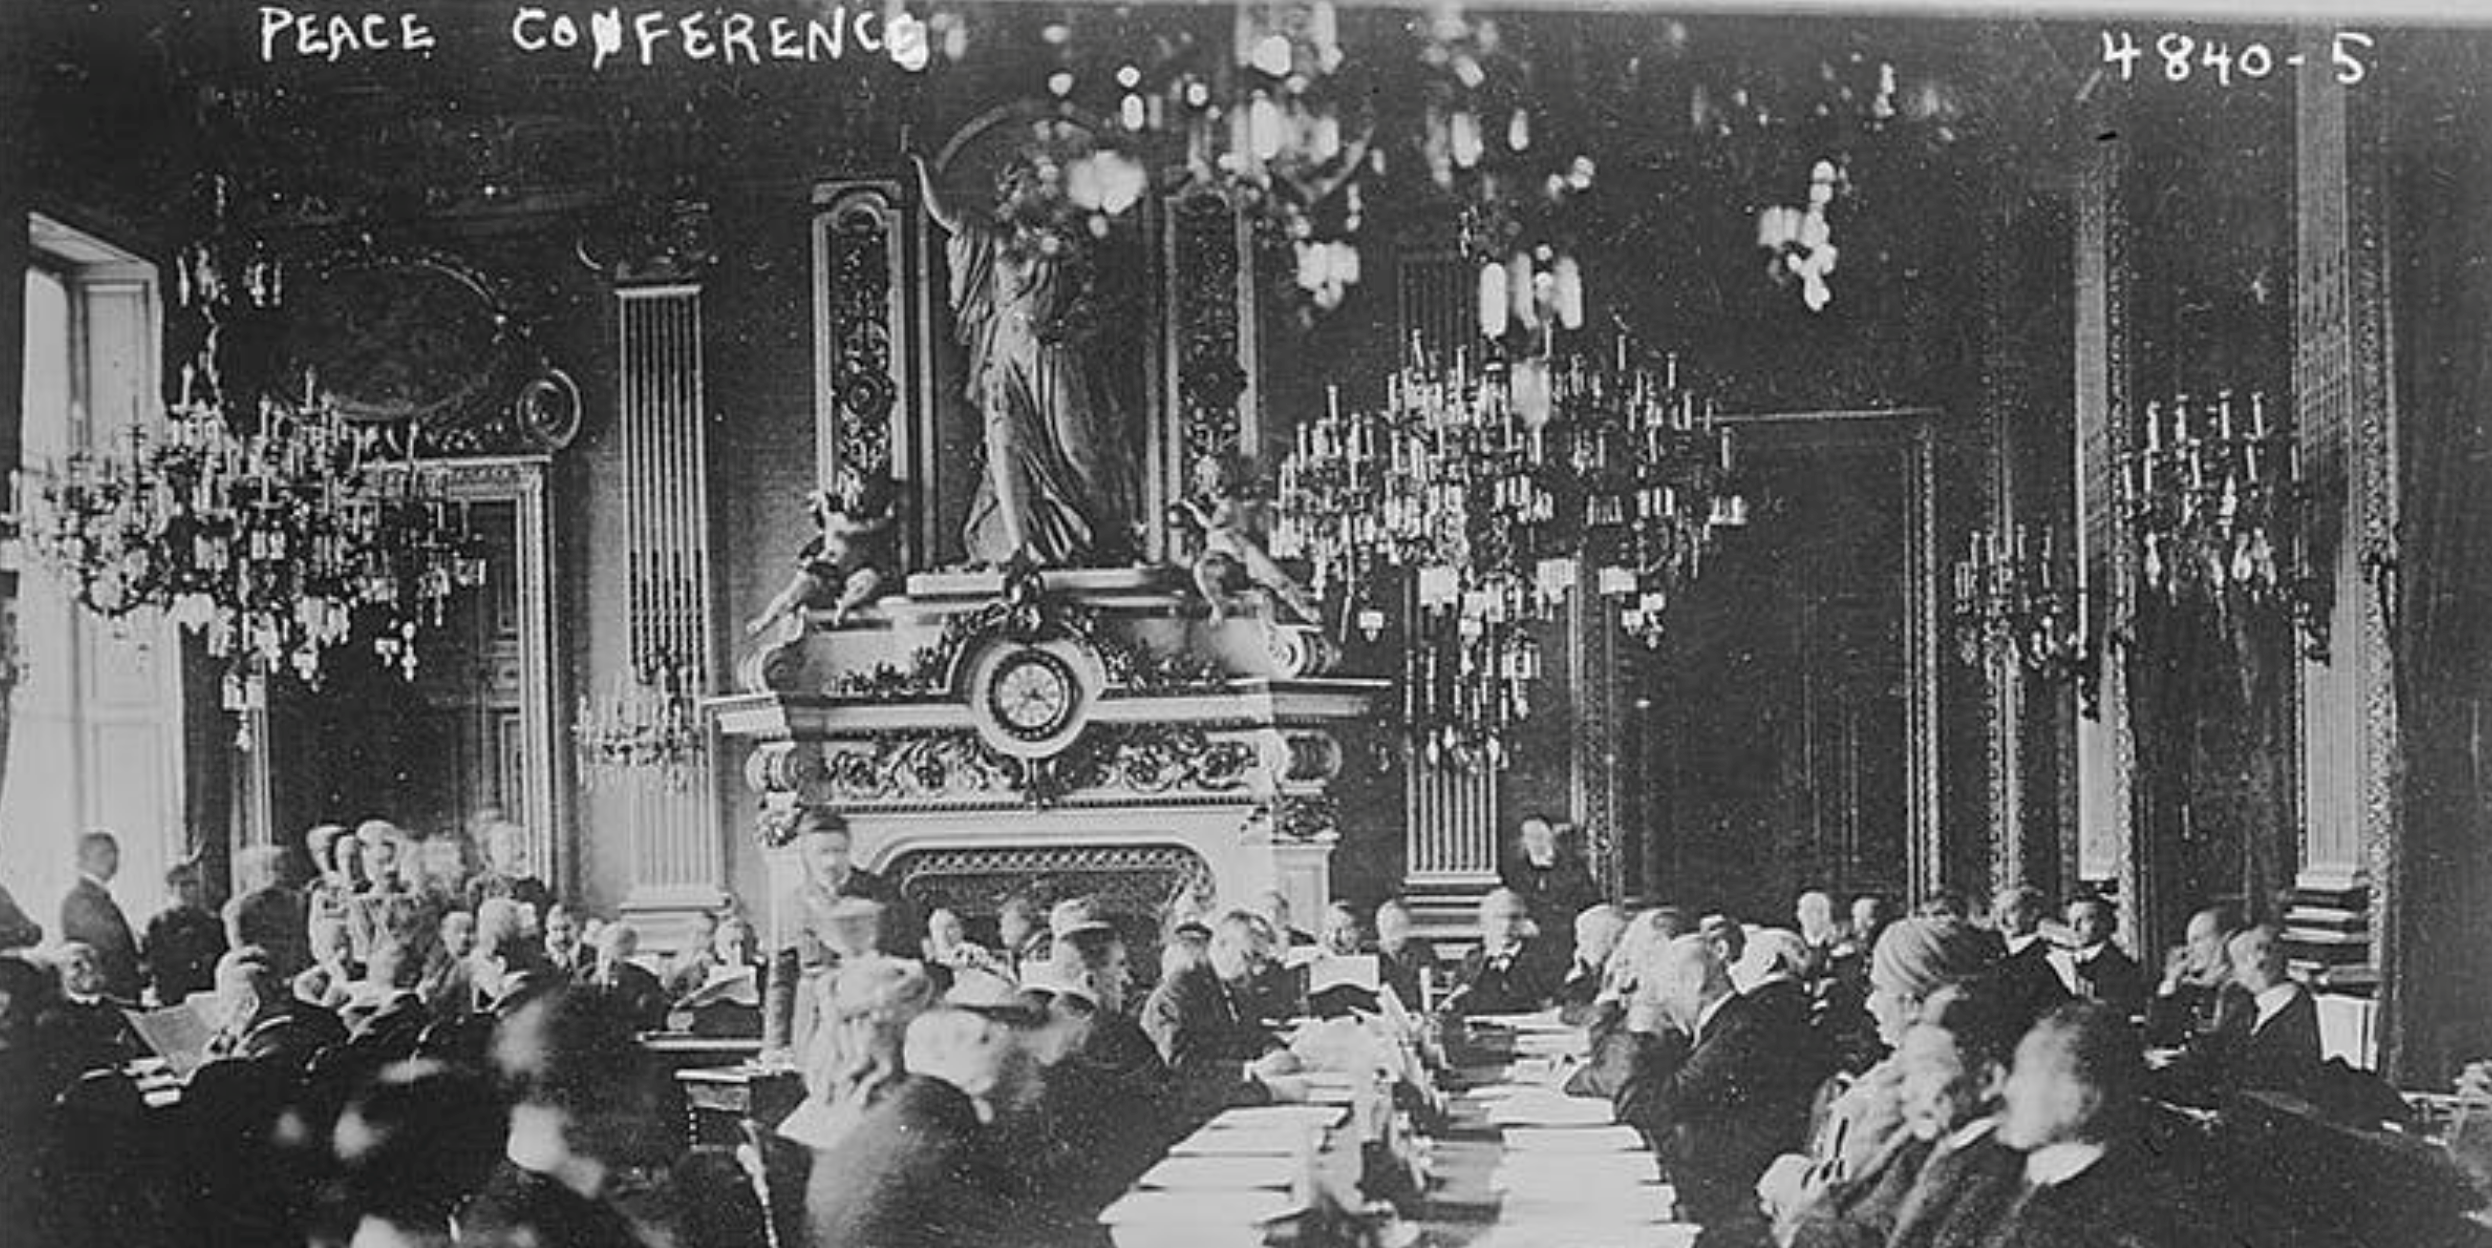 27 - 28 June: TWO DAY CONFERENCE: Peace making after the First World War 1919-1923